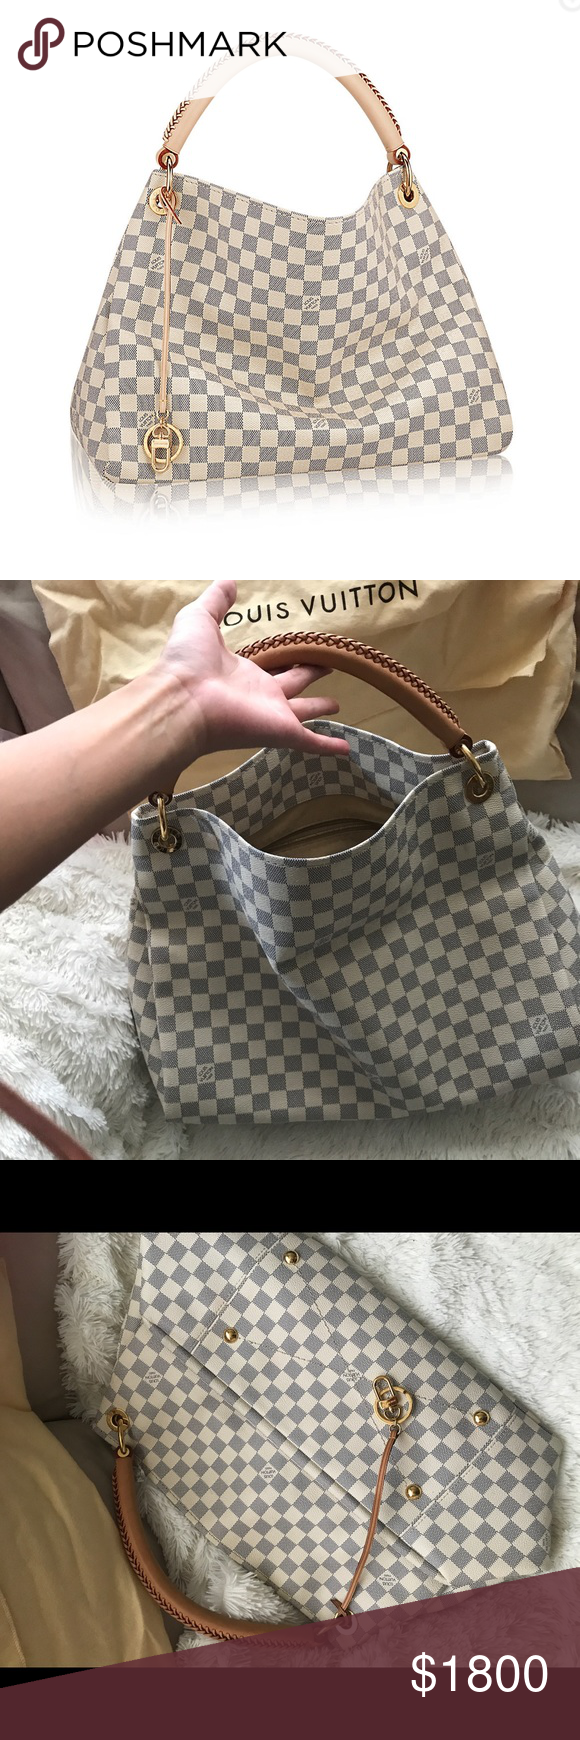 23f97fb44f1 100% authentic Louis Vuitton Artsy Azur 100% authentic artsy MM purse.  Purchased directly